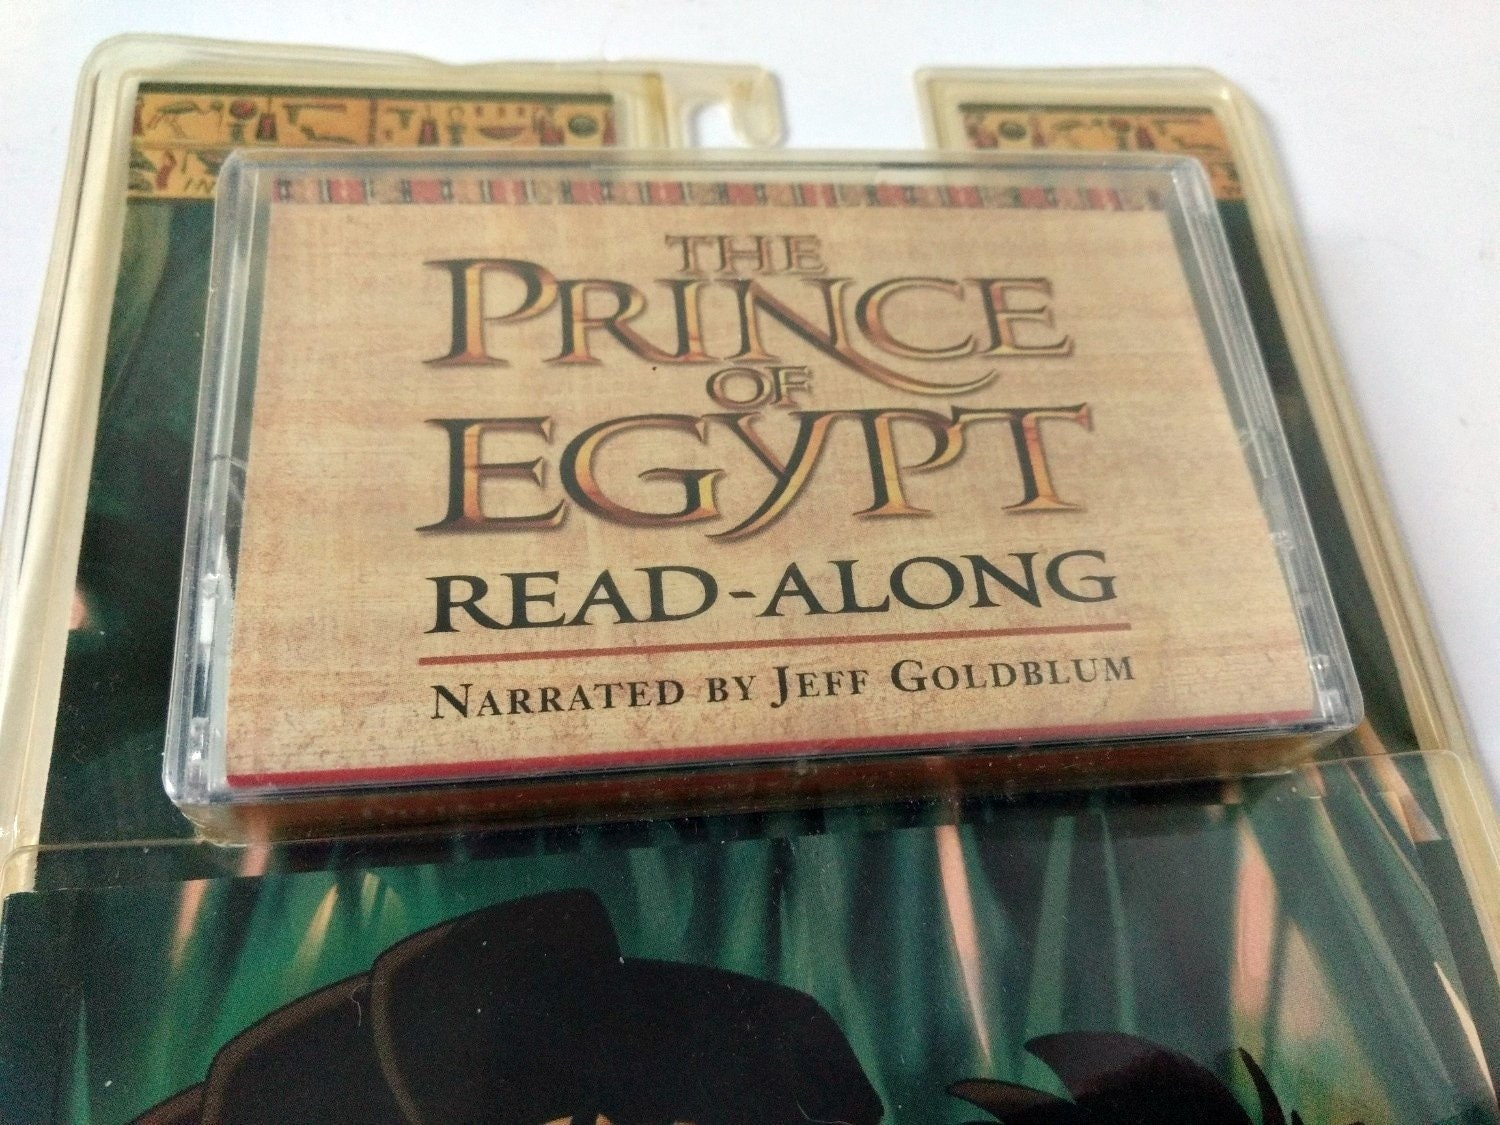 The Prince of Egypt by Jeff Goldblum Read Along Book Set, Book and  Cassette, life of Moses songs music story family enjoyment